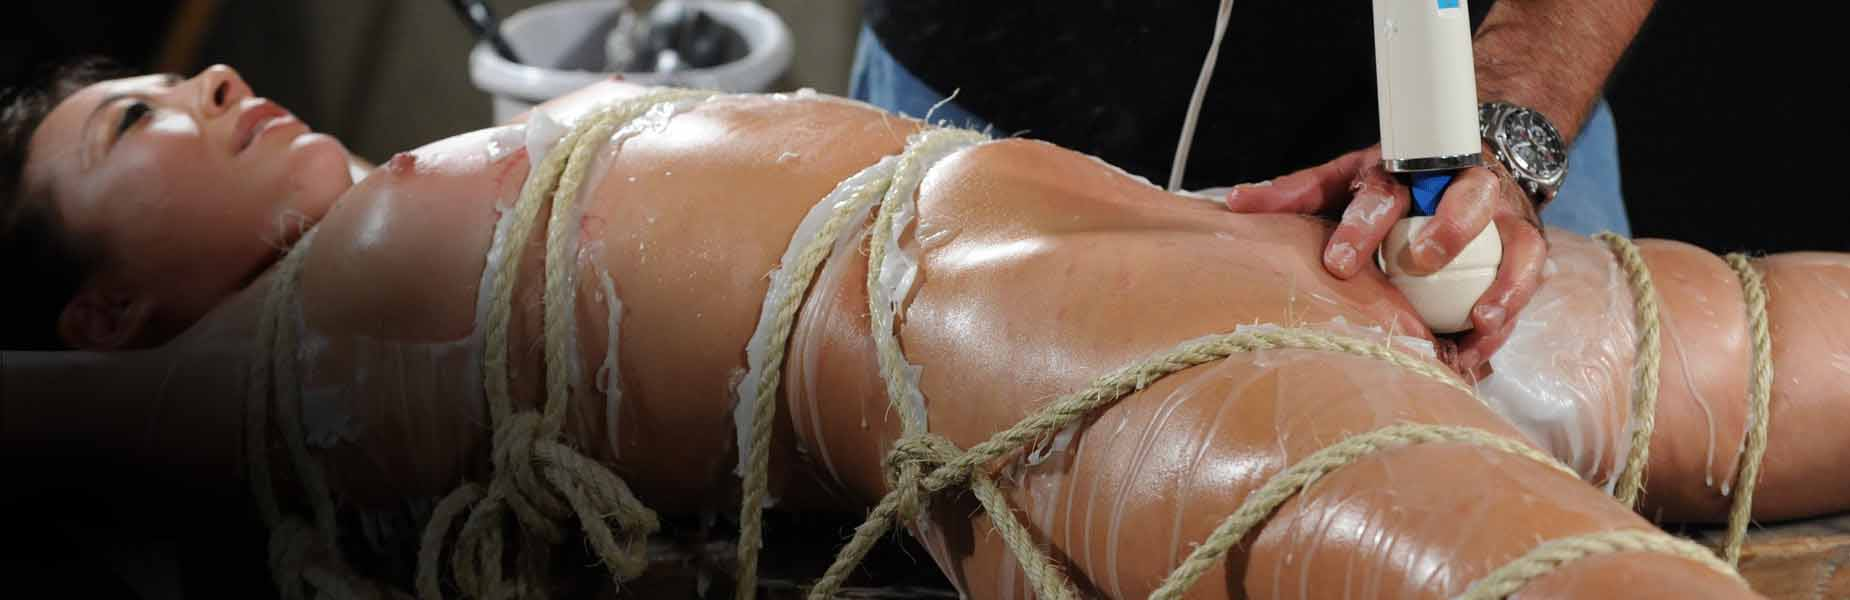 Hot Wax and Shibari Rope Bondage